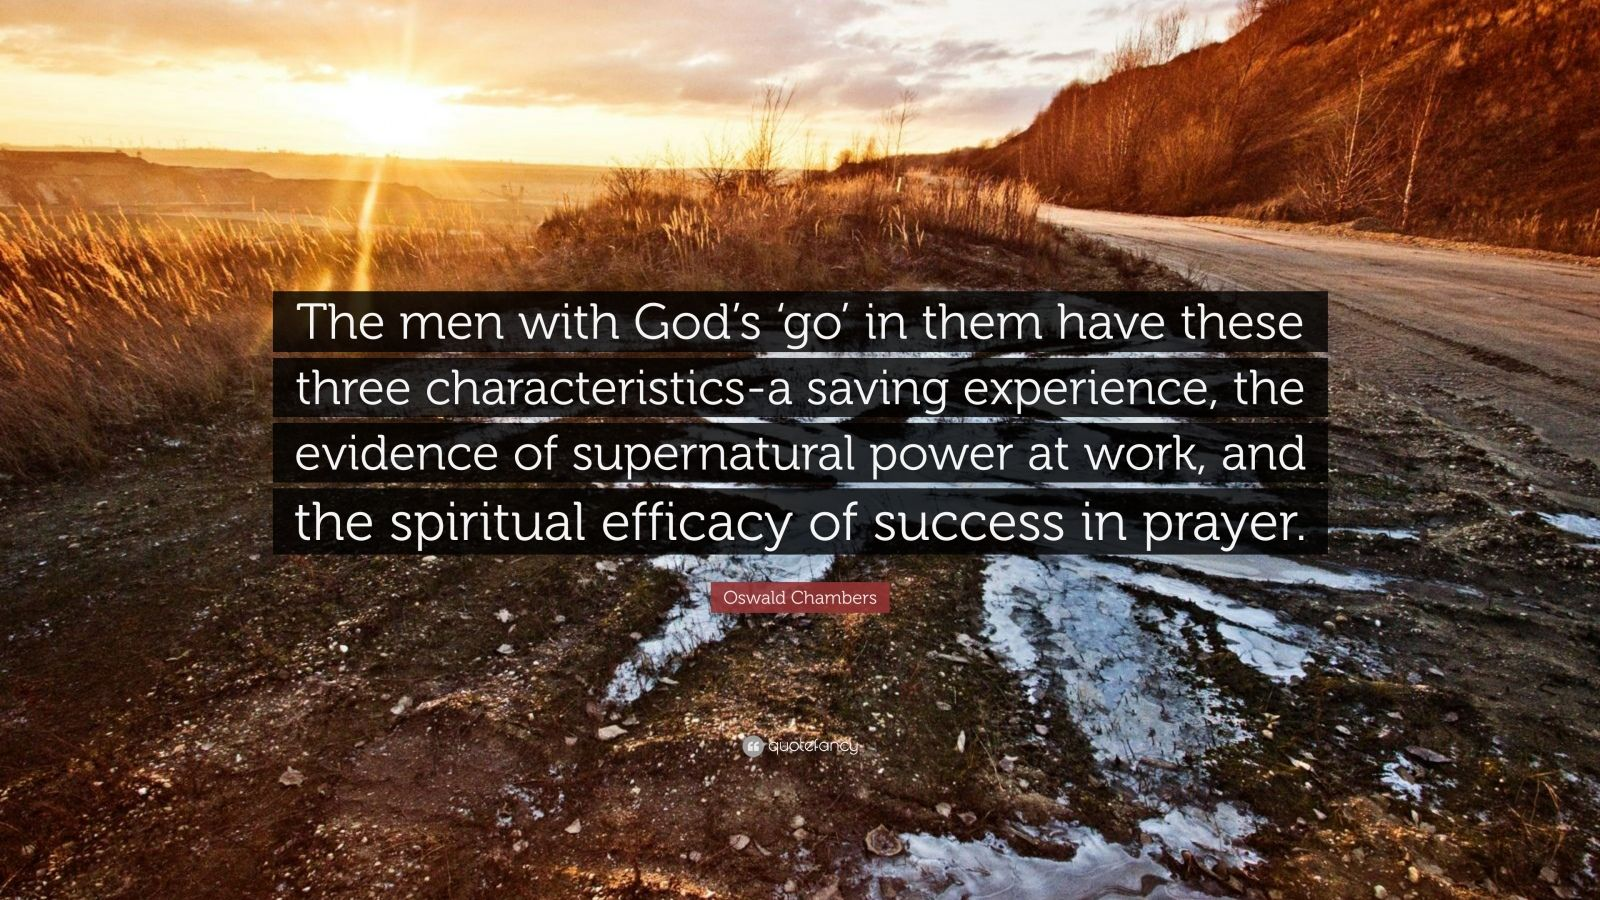 """Oswald Chambers Quote: """"The men with God's 'go' in them have these three characteristics-a saving experience, the evidence of supernatural power at work, and the spiritual efficacy of success in prayer."""""""